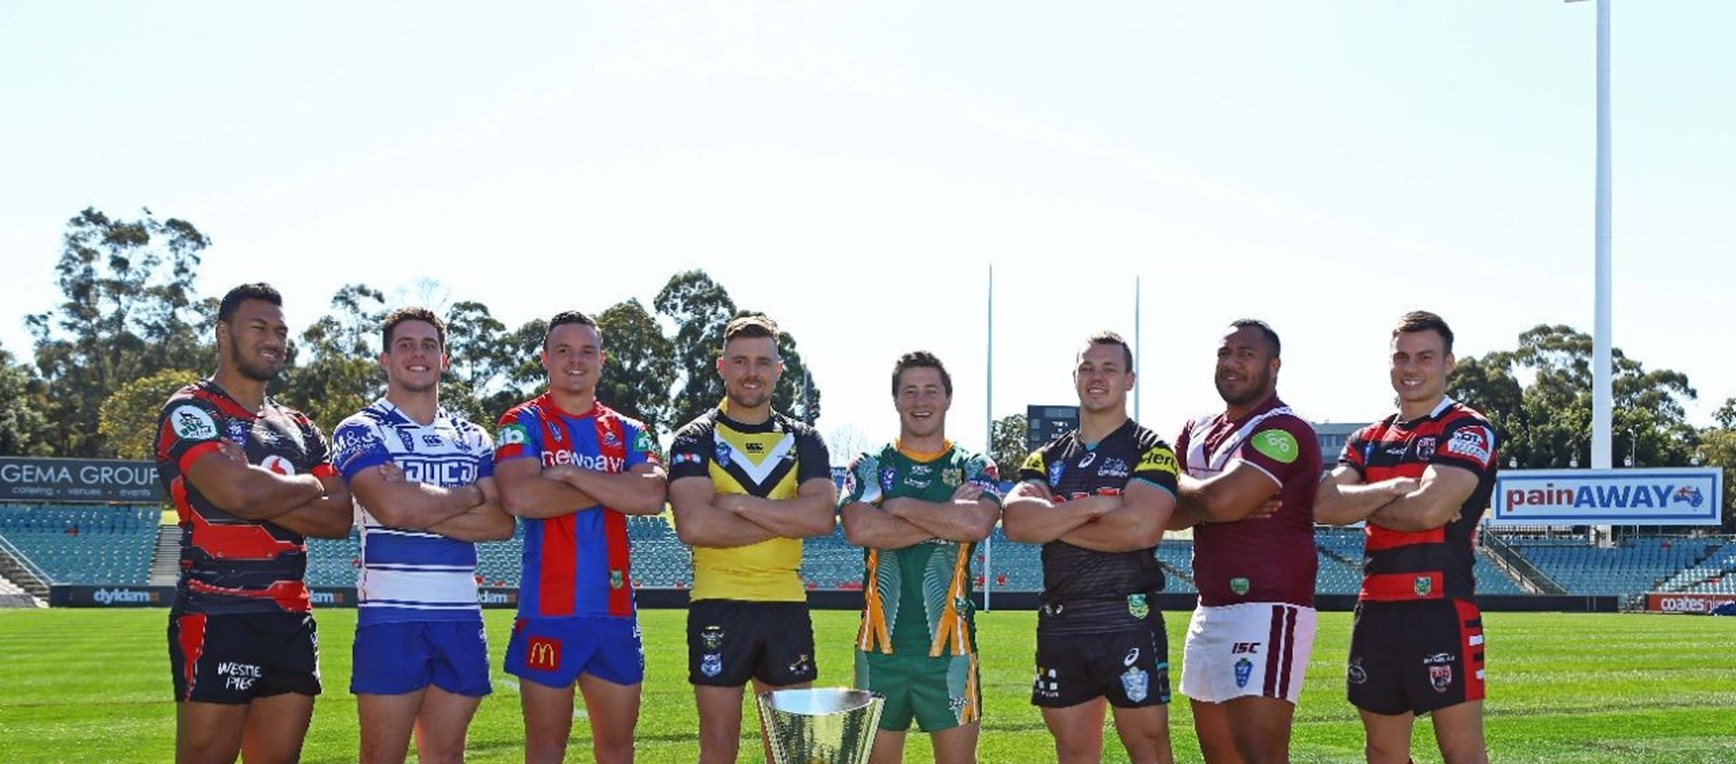 Finals fever hits NSWRL